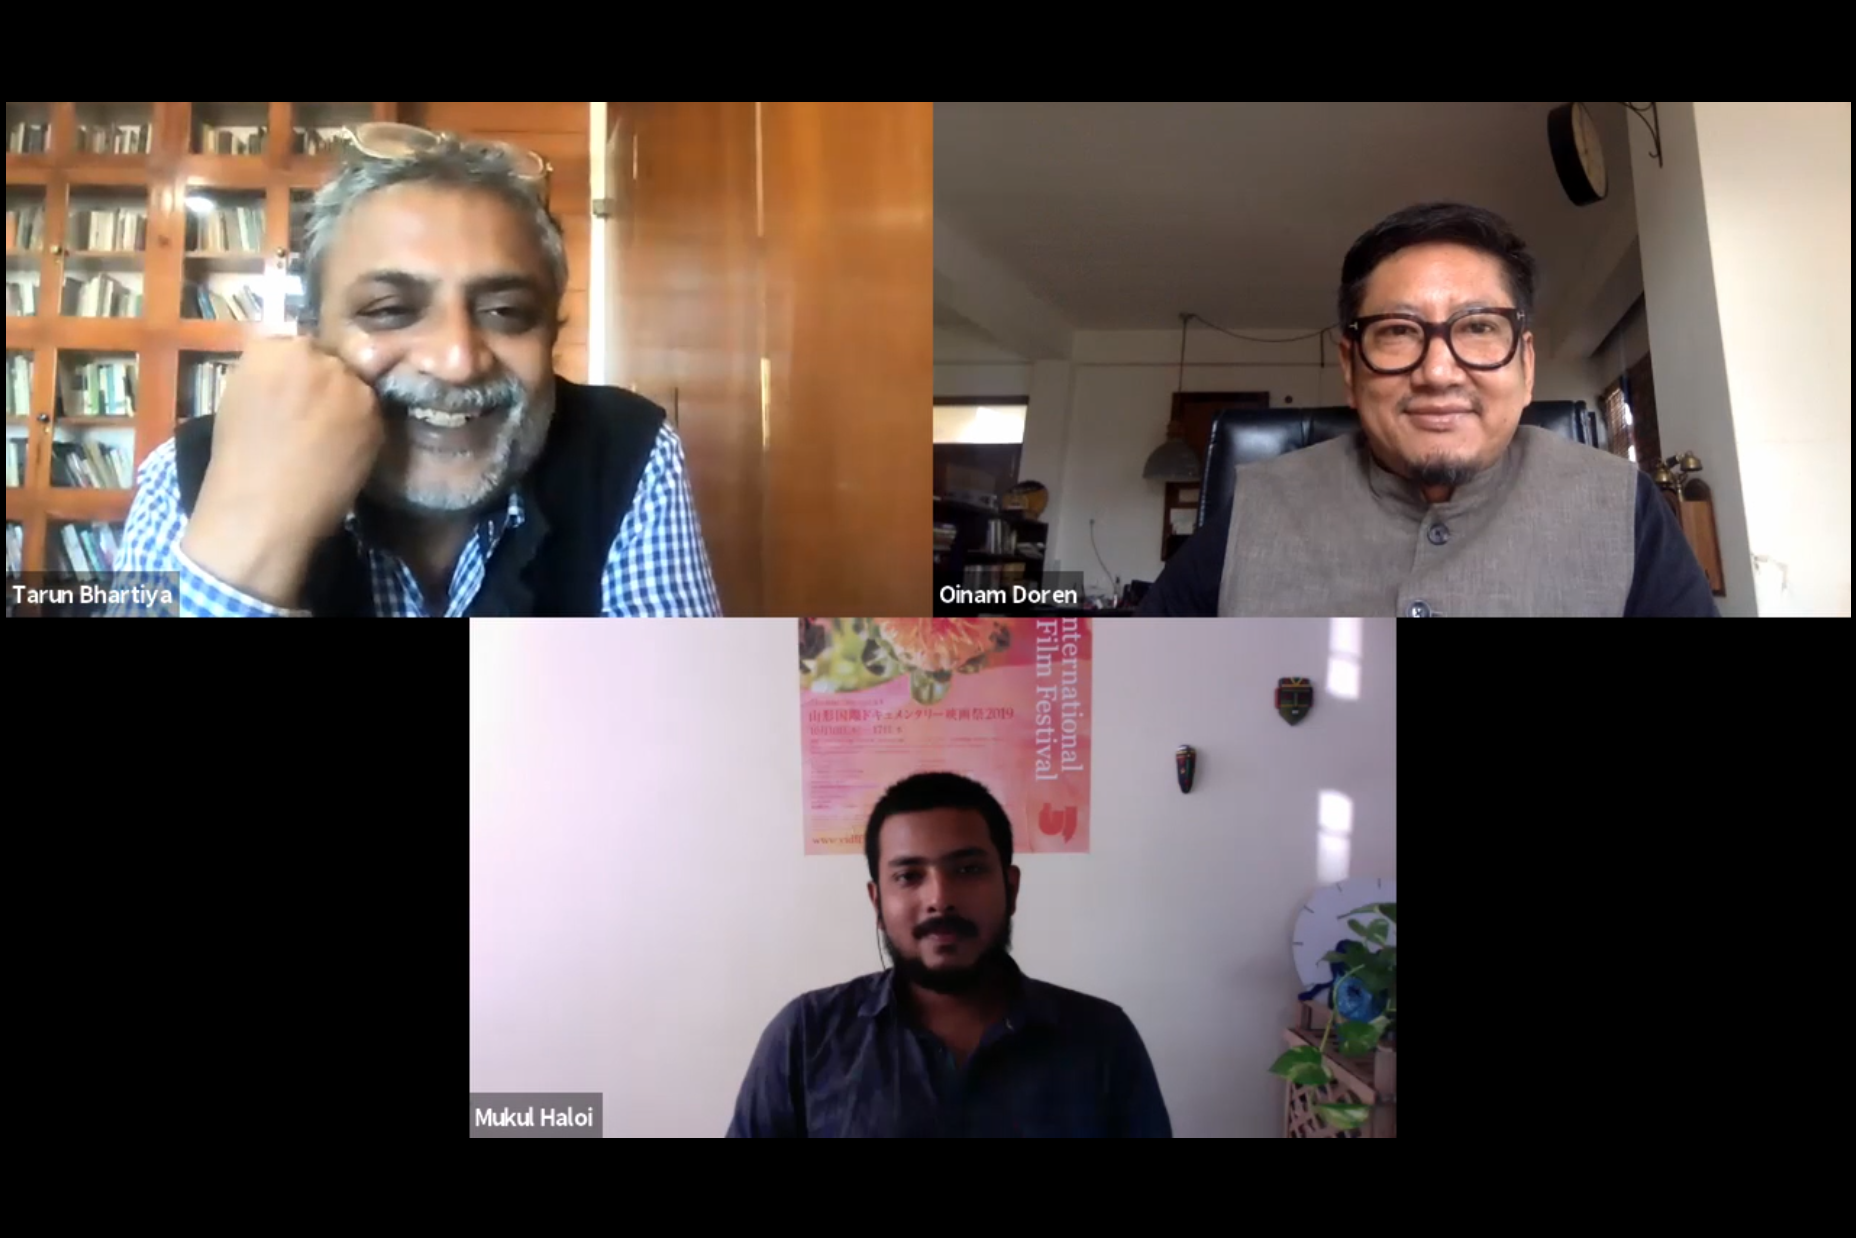 A spring for documentary filmmaking in Northeast India: A conversation with directors Mukul Haloi, Oinam Doren, and Tarun Bhartiya